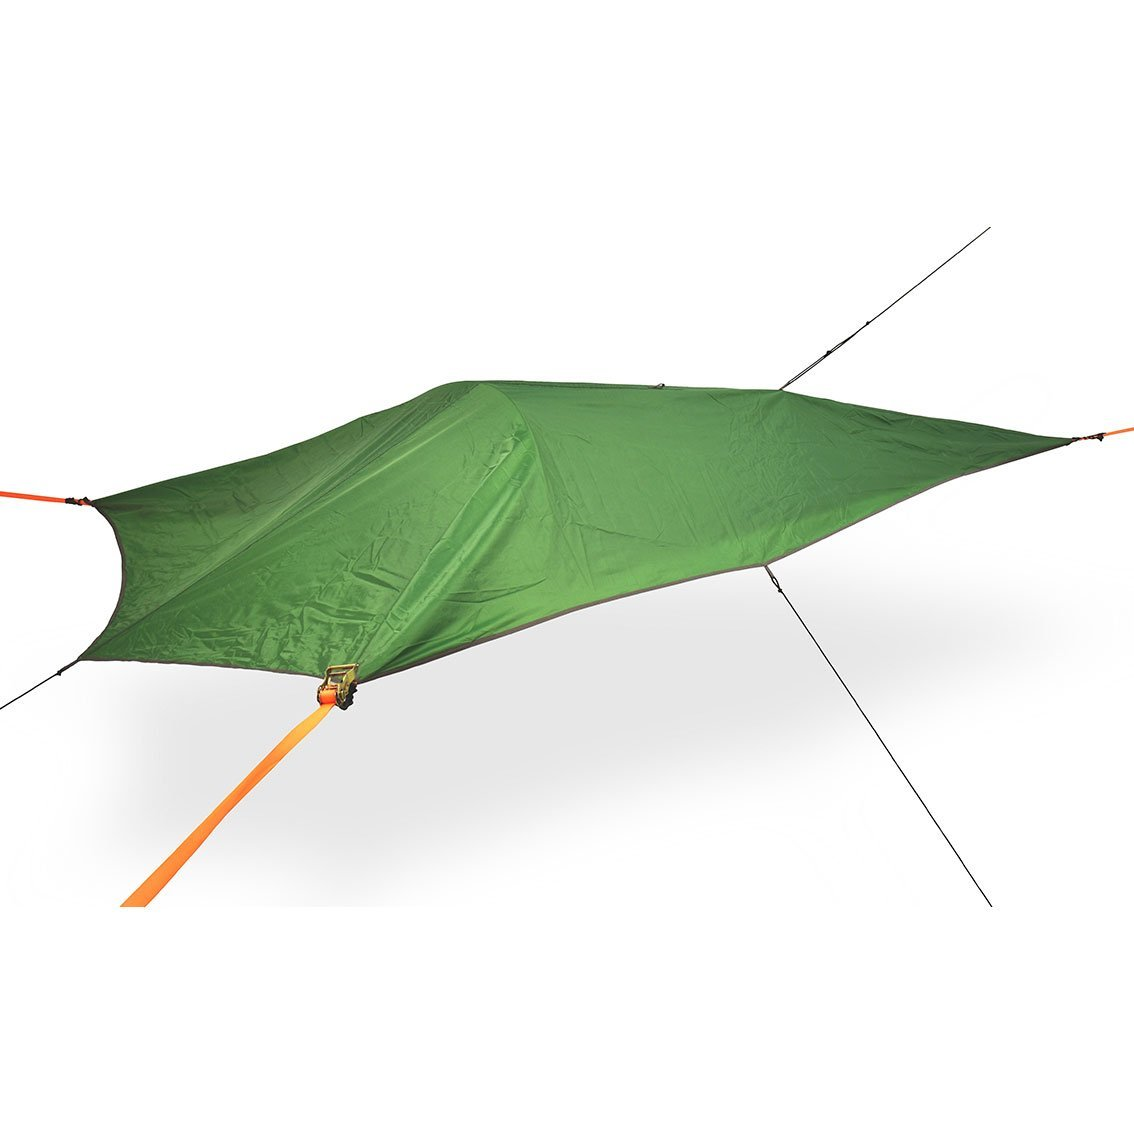 Tentsile | UNA Tree Tent | One Person Lightweight Hammock Tent | Forest Green